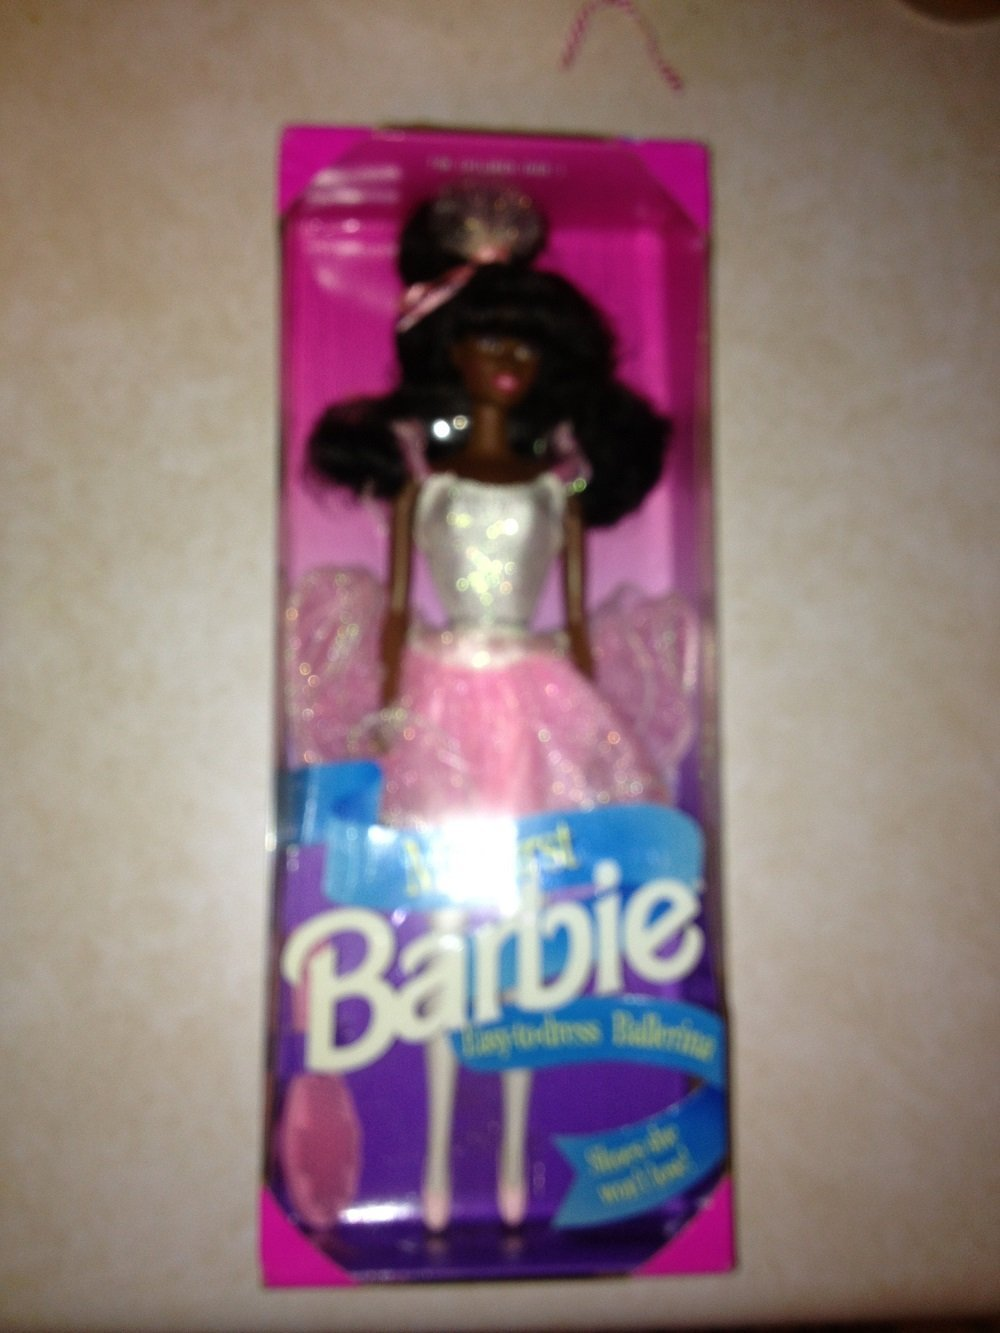 My First Barbie Easy-to-Dress Ballerina (African American) 1994